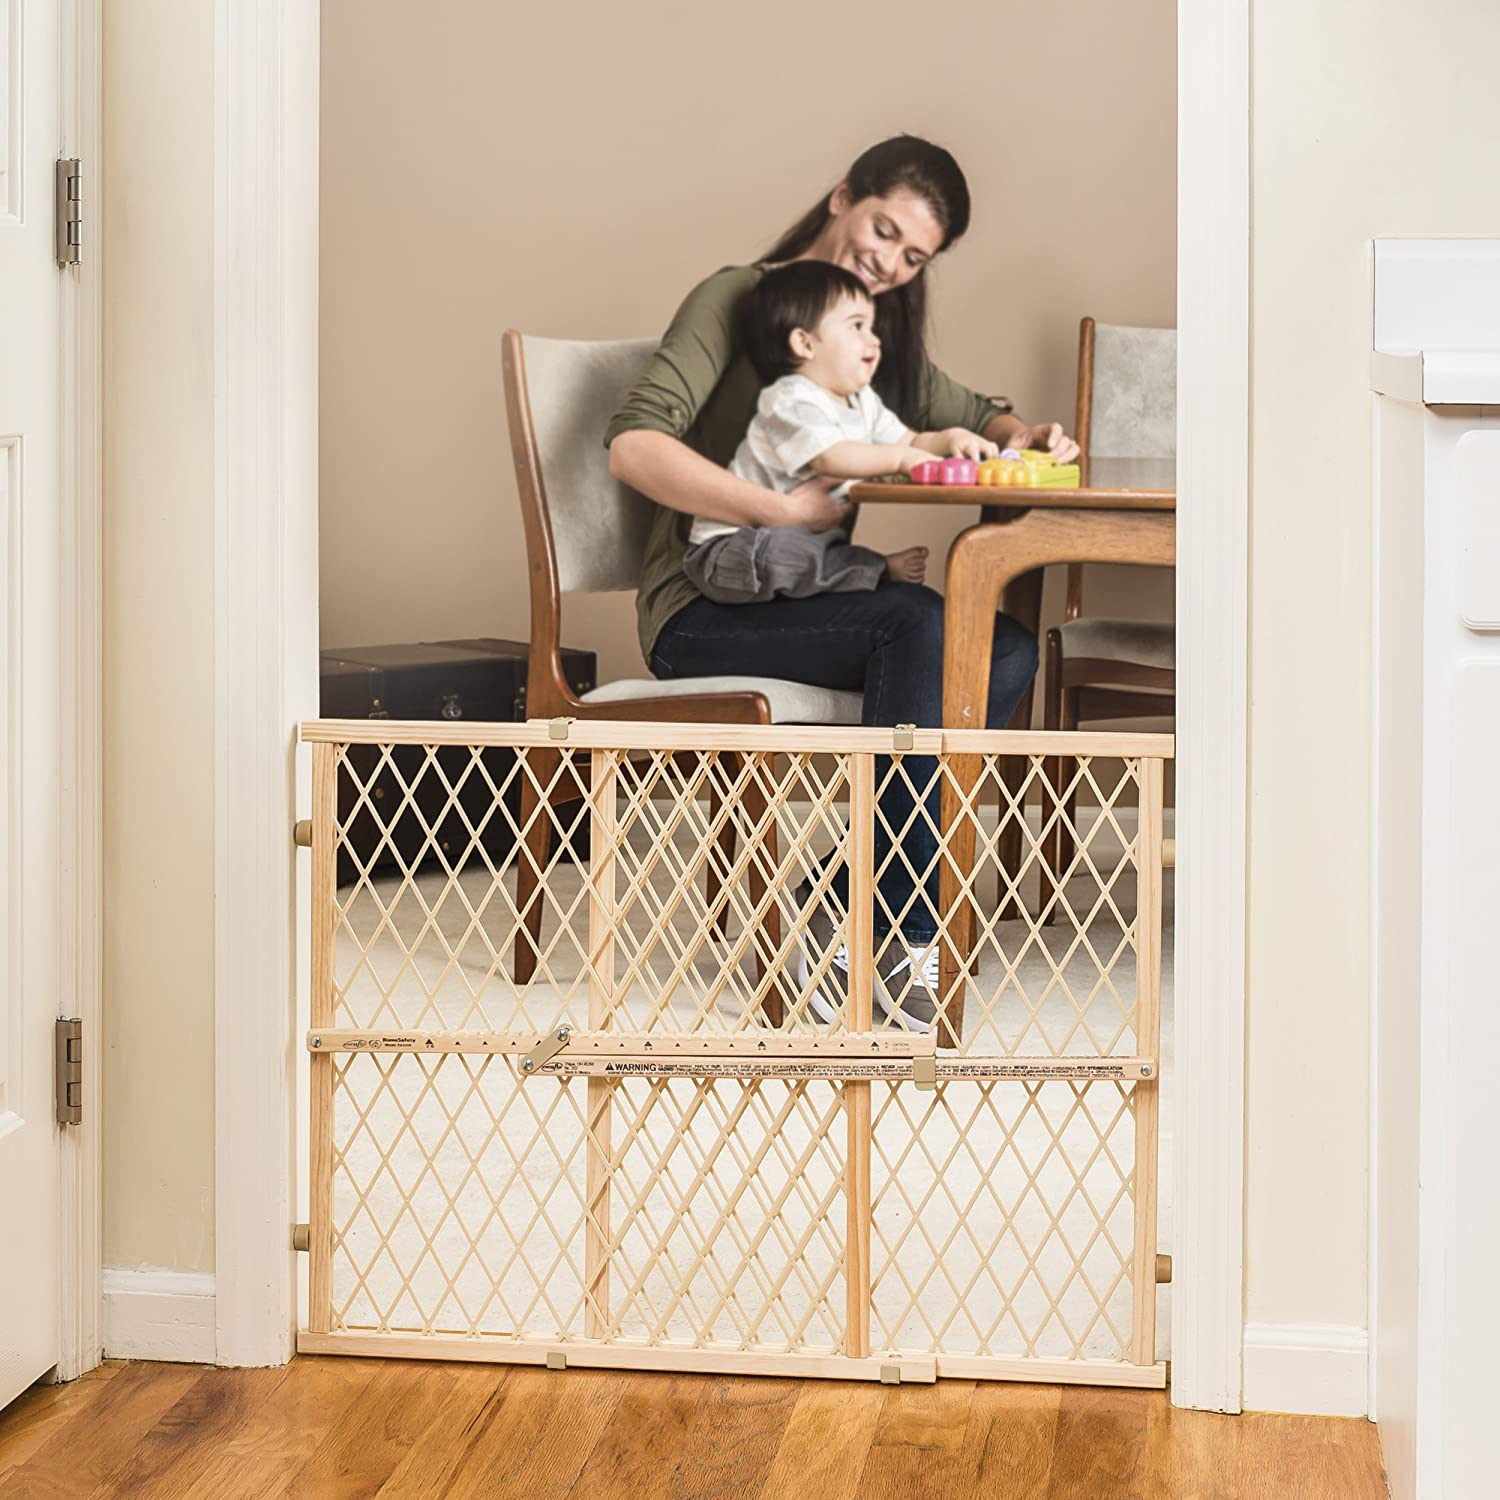 Amazon Com Evenflo Position And Lock Wood Gate Indoor Safety